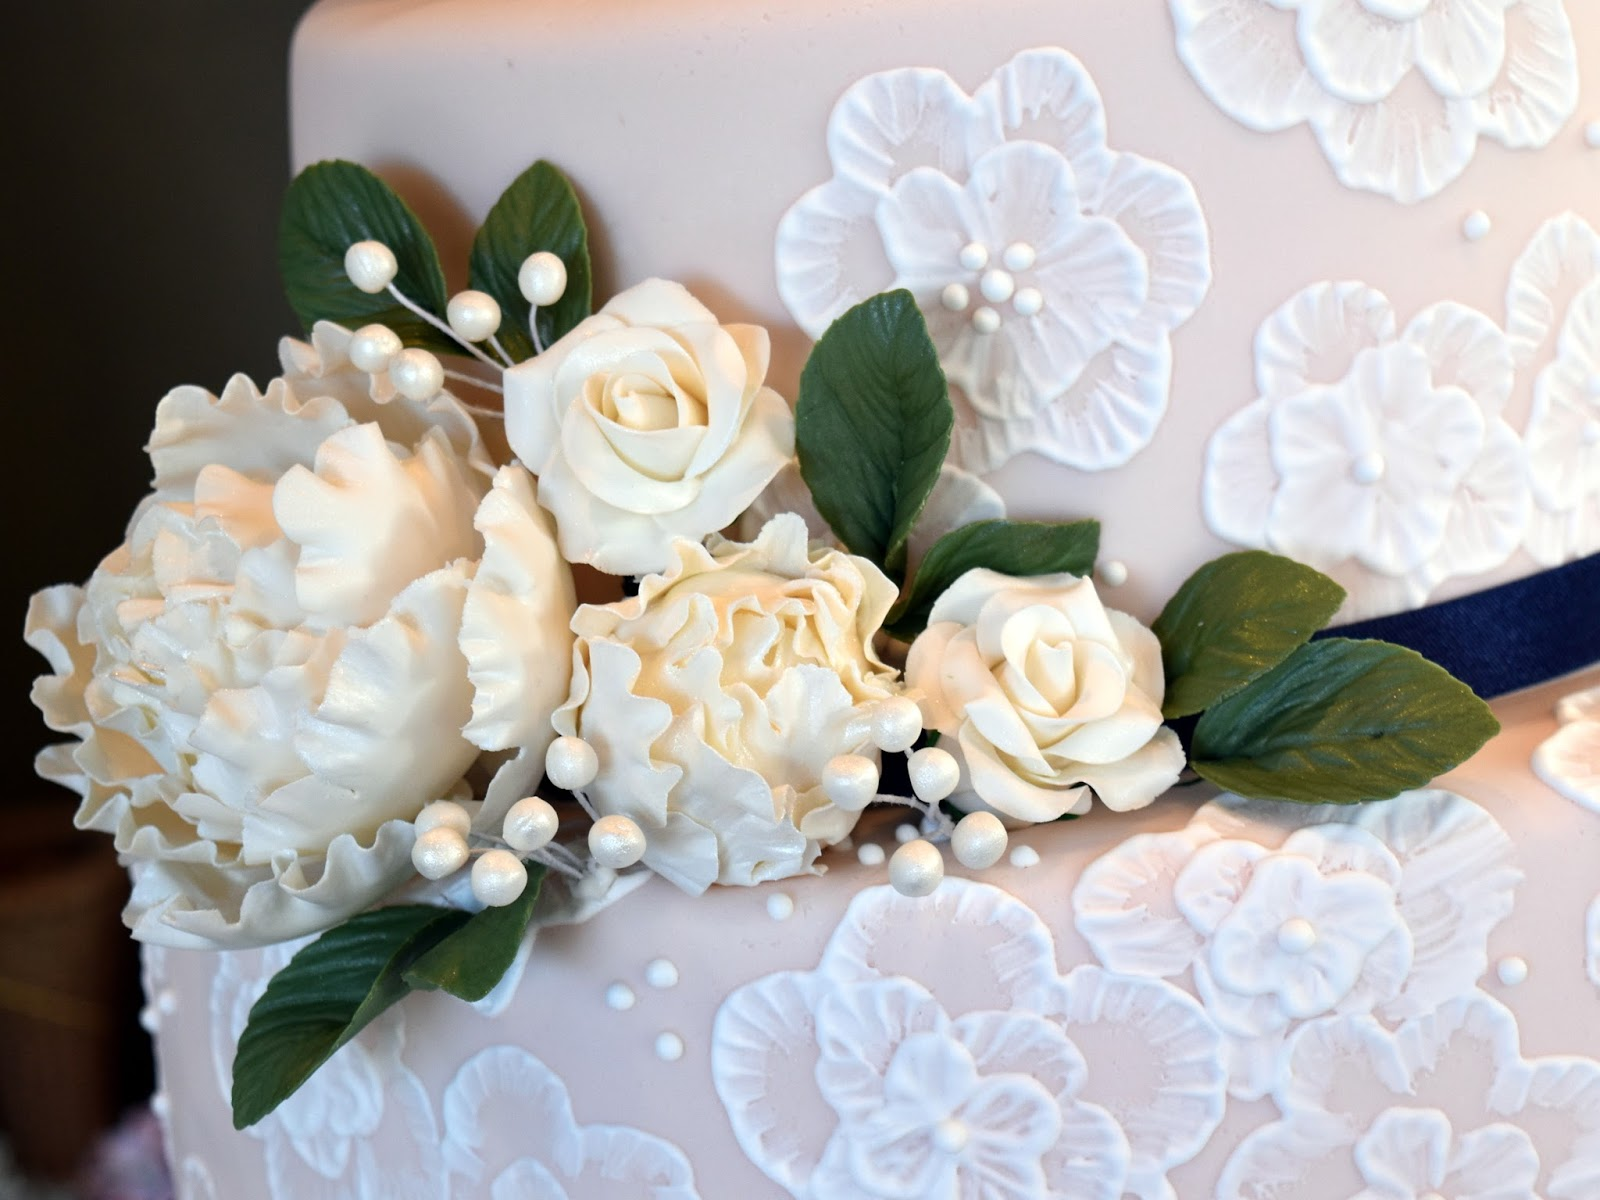 The wedding cake project july 2017 i covered this cake with blush pink fondant i used white royal icing to create the embroidered floral design the ivory peonies roses berries izmirmasajfo